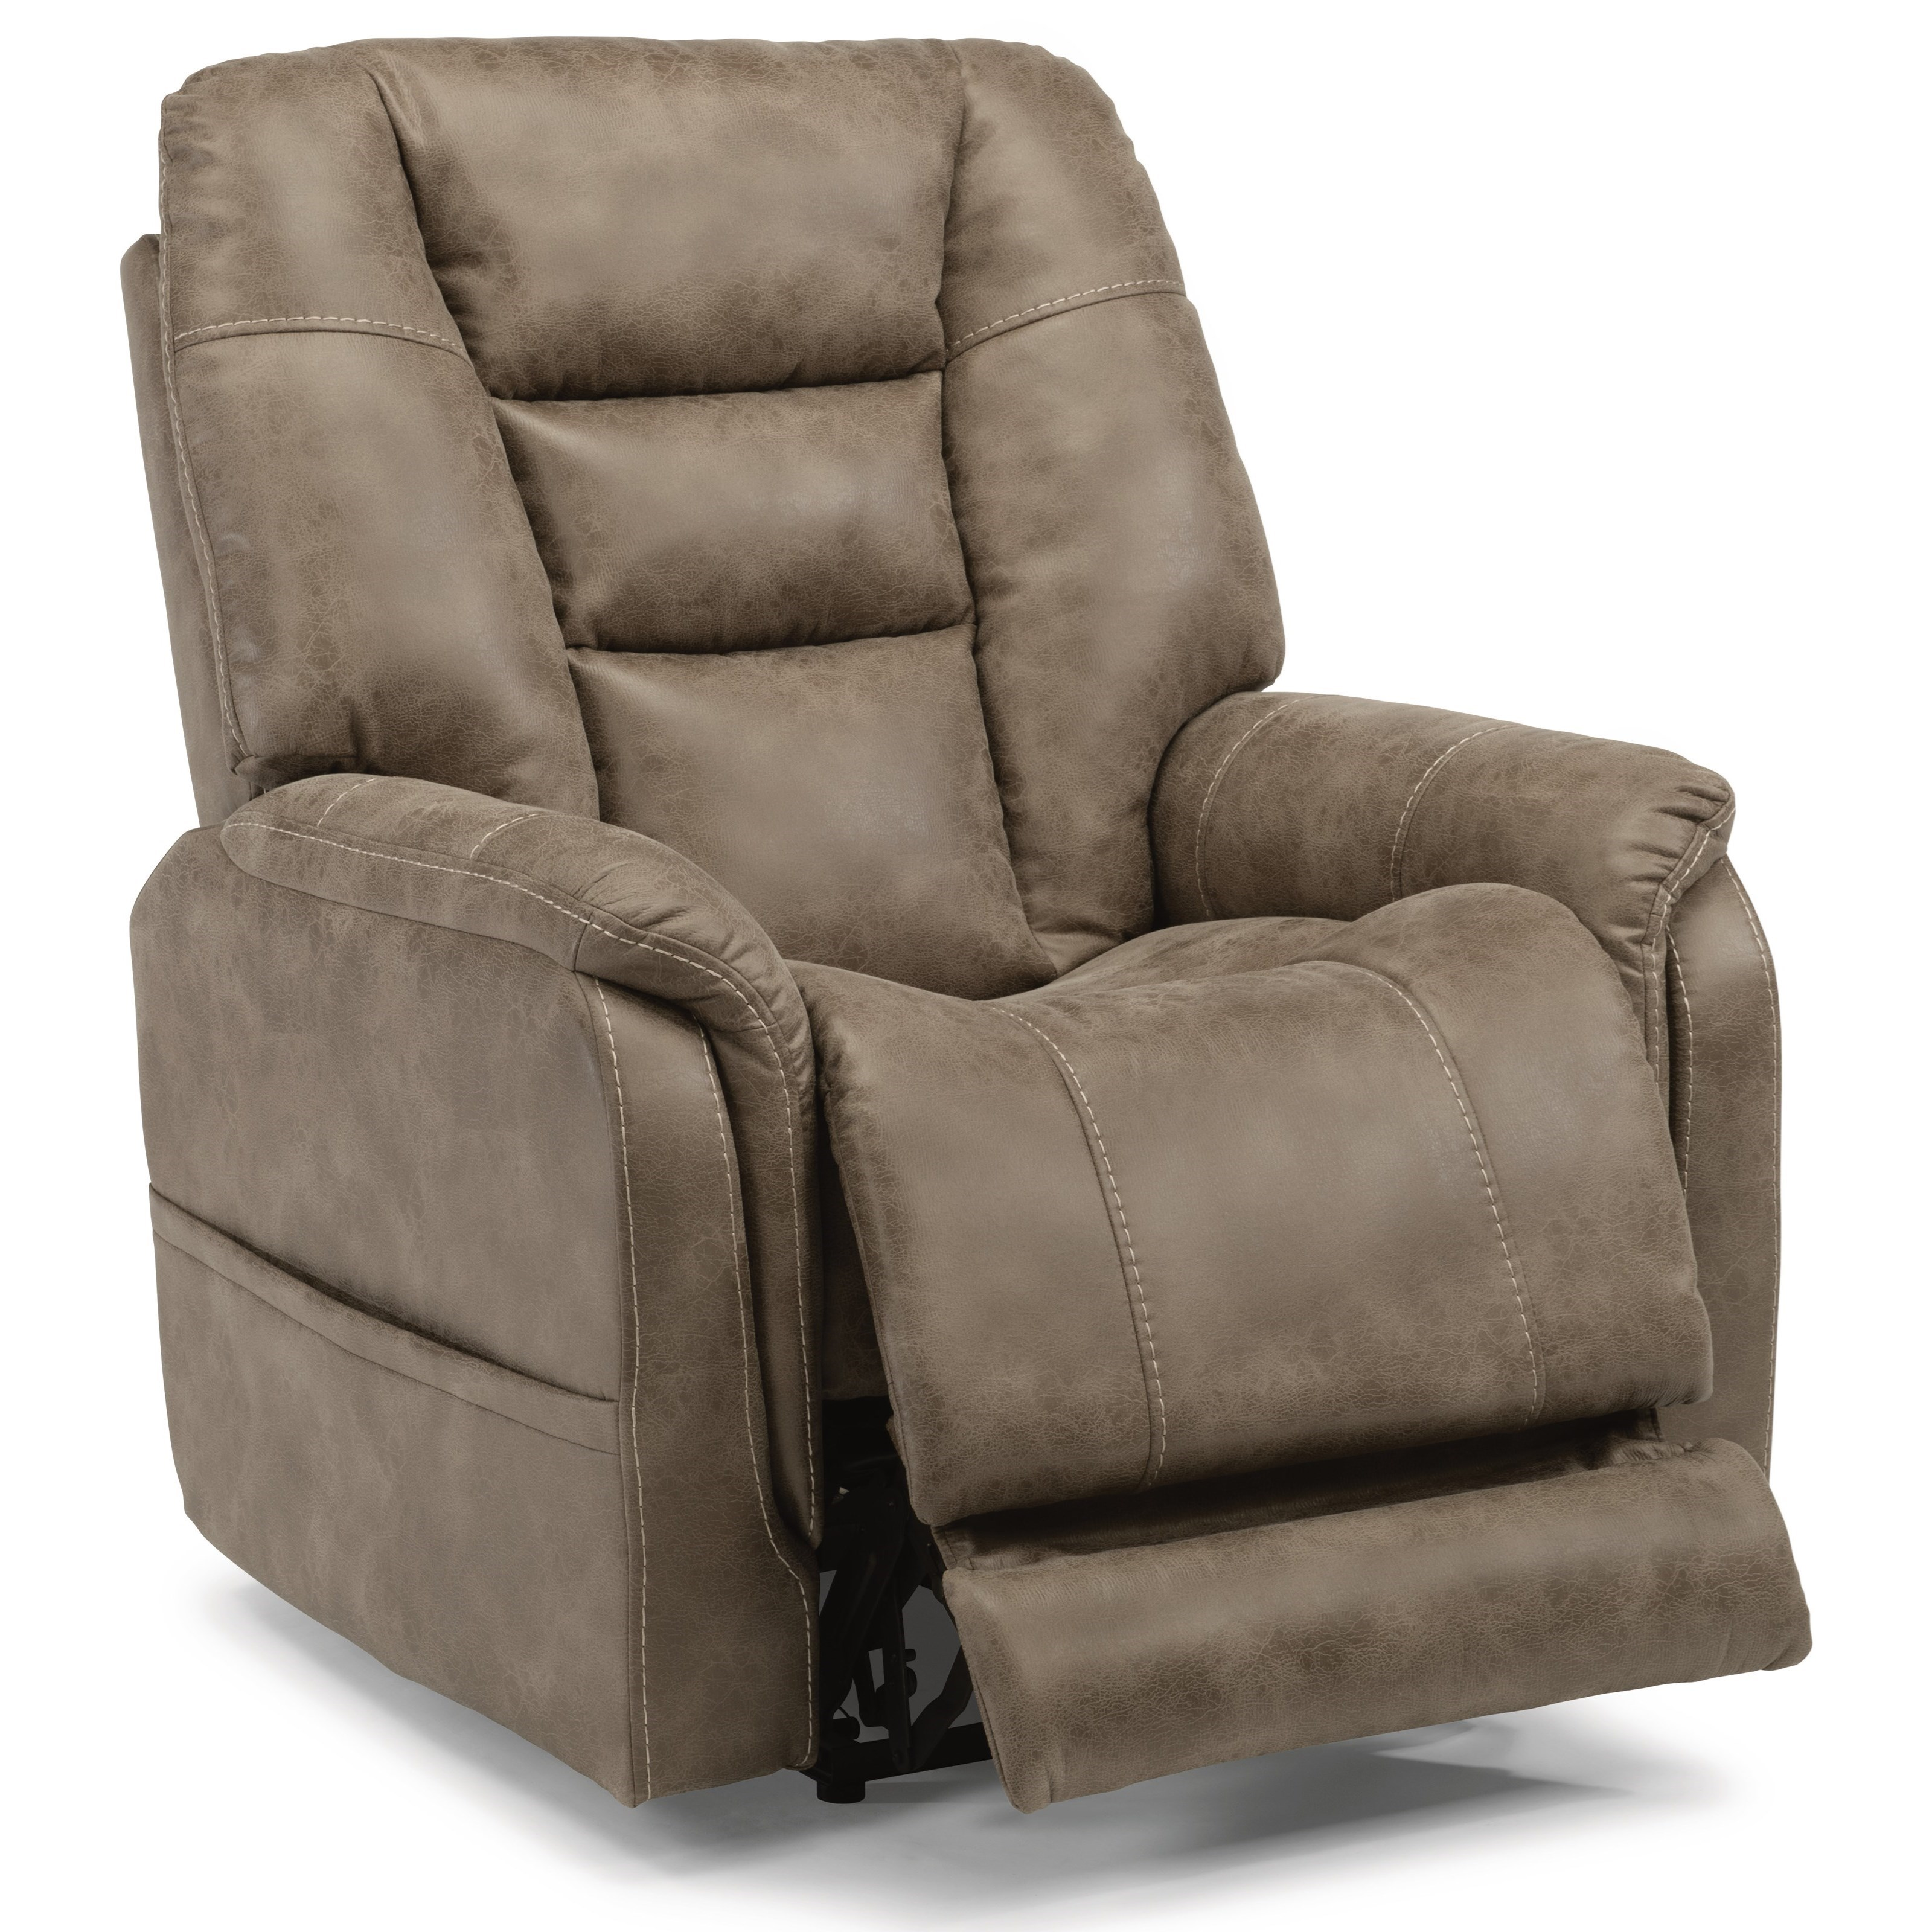 Latitudes-Theo Power Recliner with Power Headrest by Flexsteel at Walker's Furniture